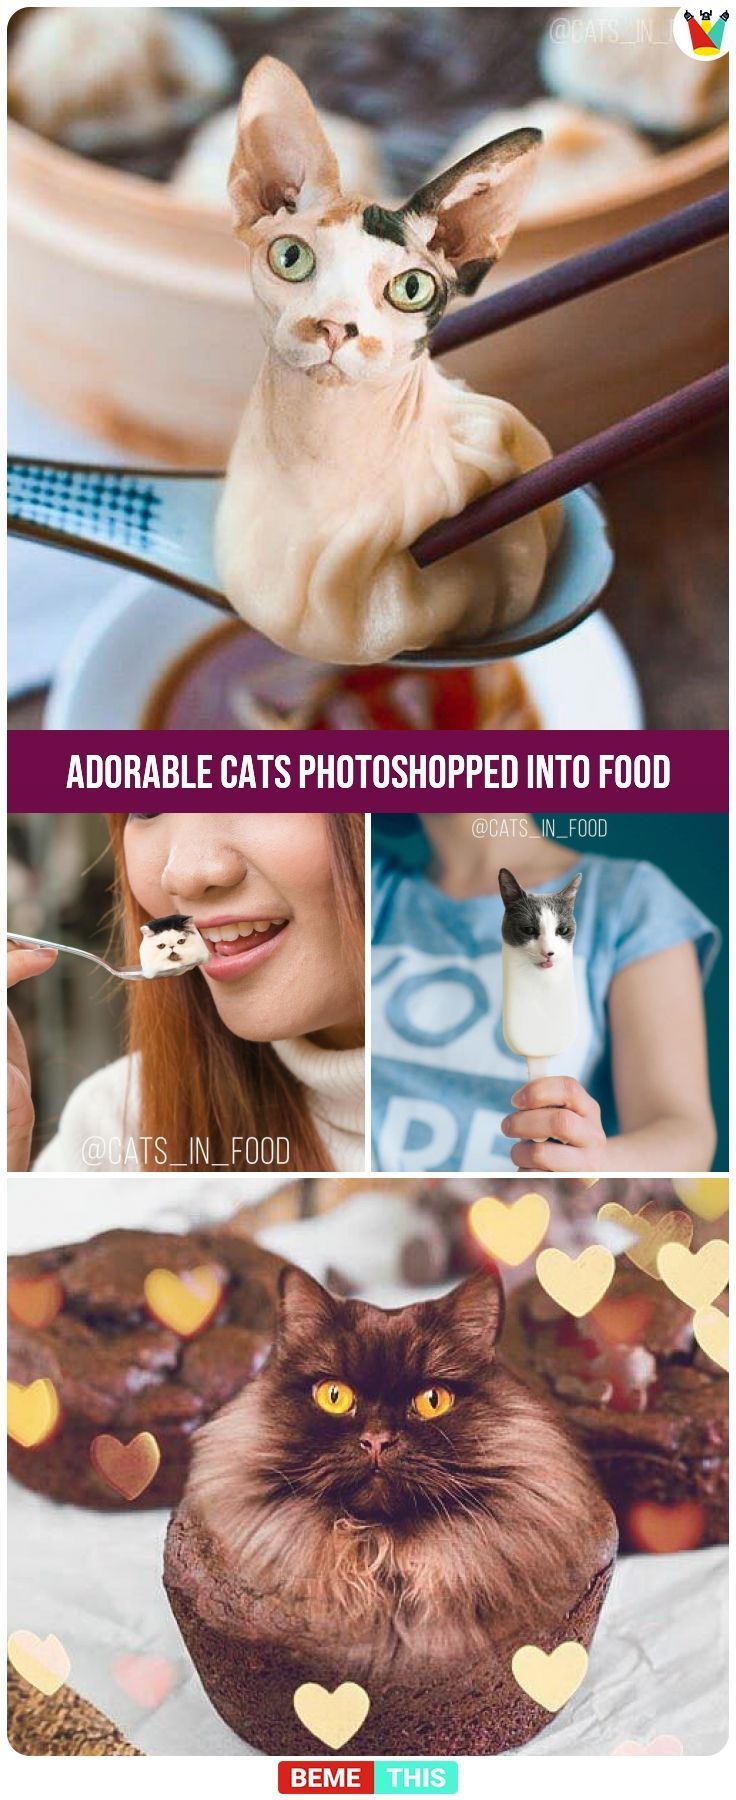 Artist Photoshop Cats Into Food And The Results Are Hilariously Cute